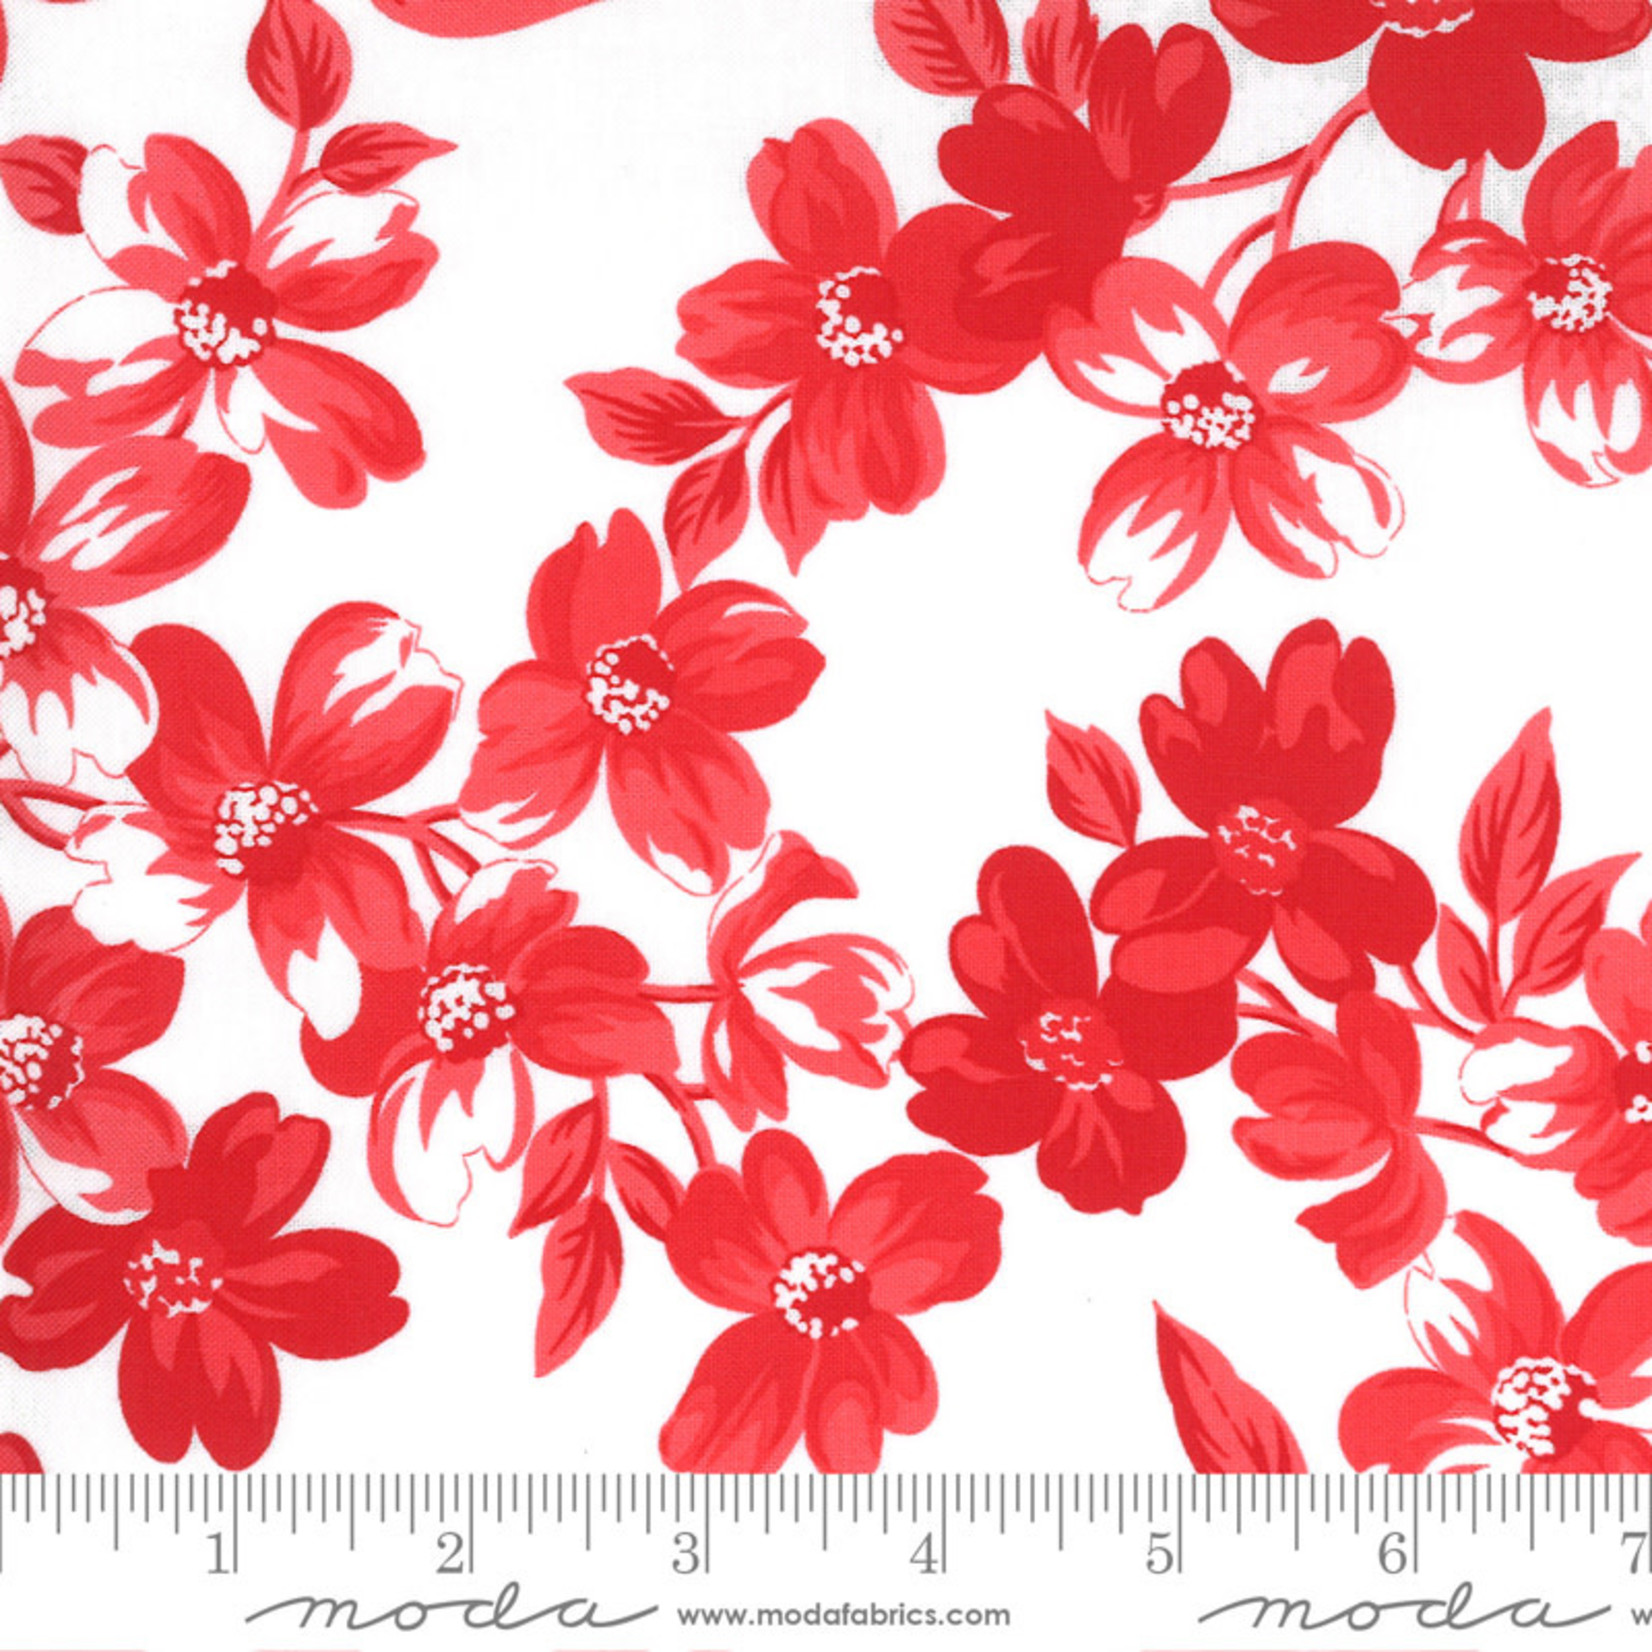 Bonnie & Camille Sunday Stroll, Full Bloom, White Red 55220 22 $0.20 per cm or $20/m